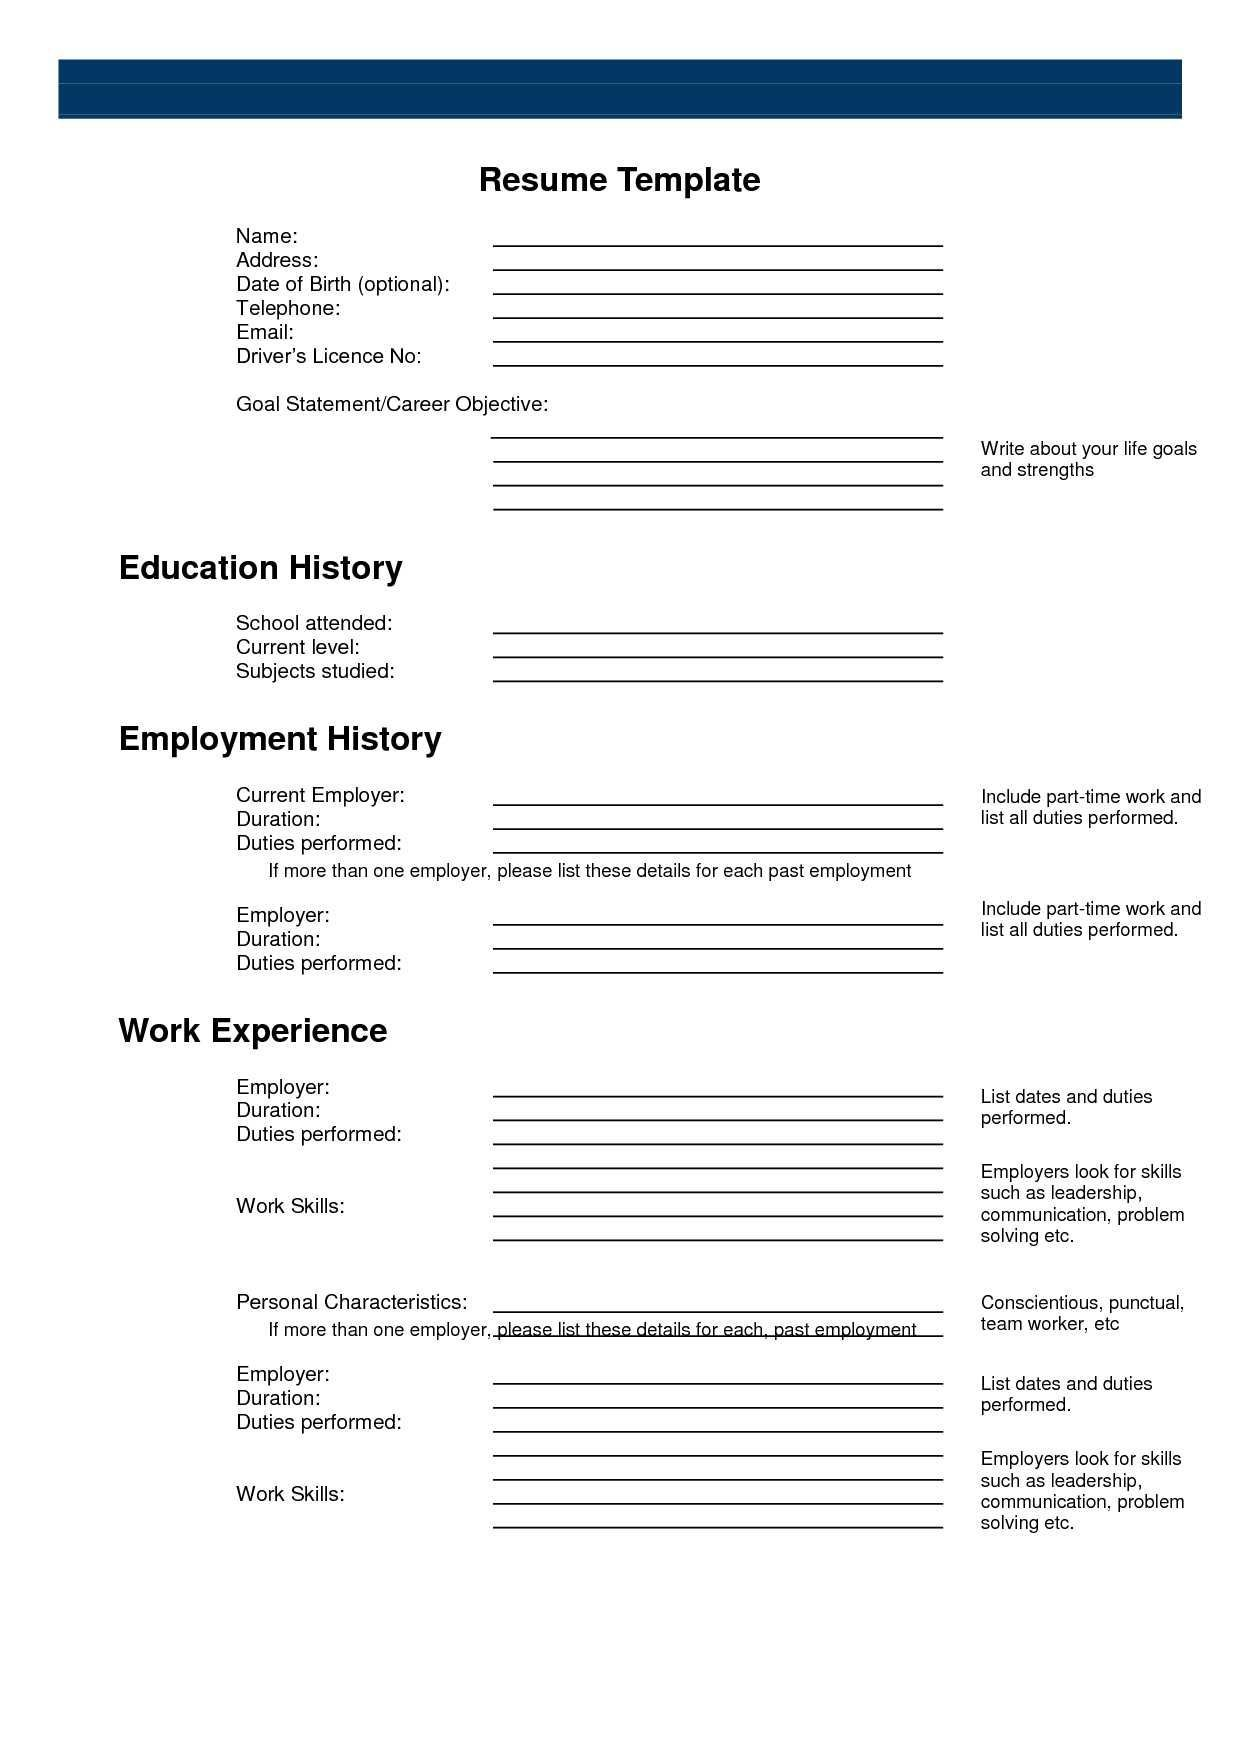 Pin By Anishfeds On Resumes